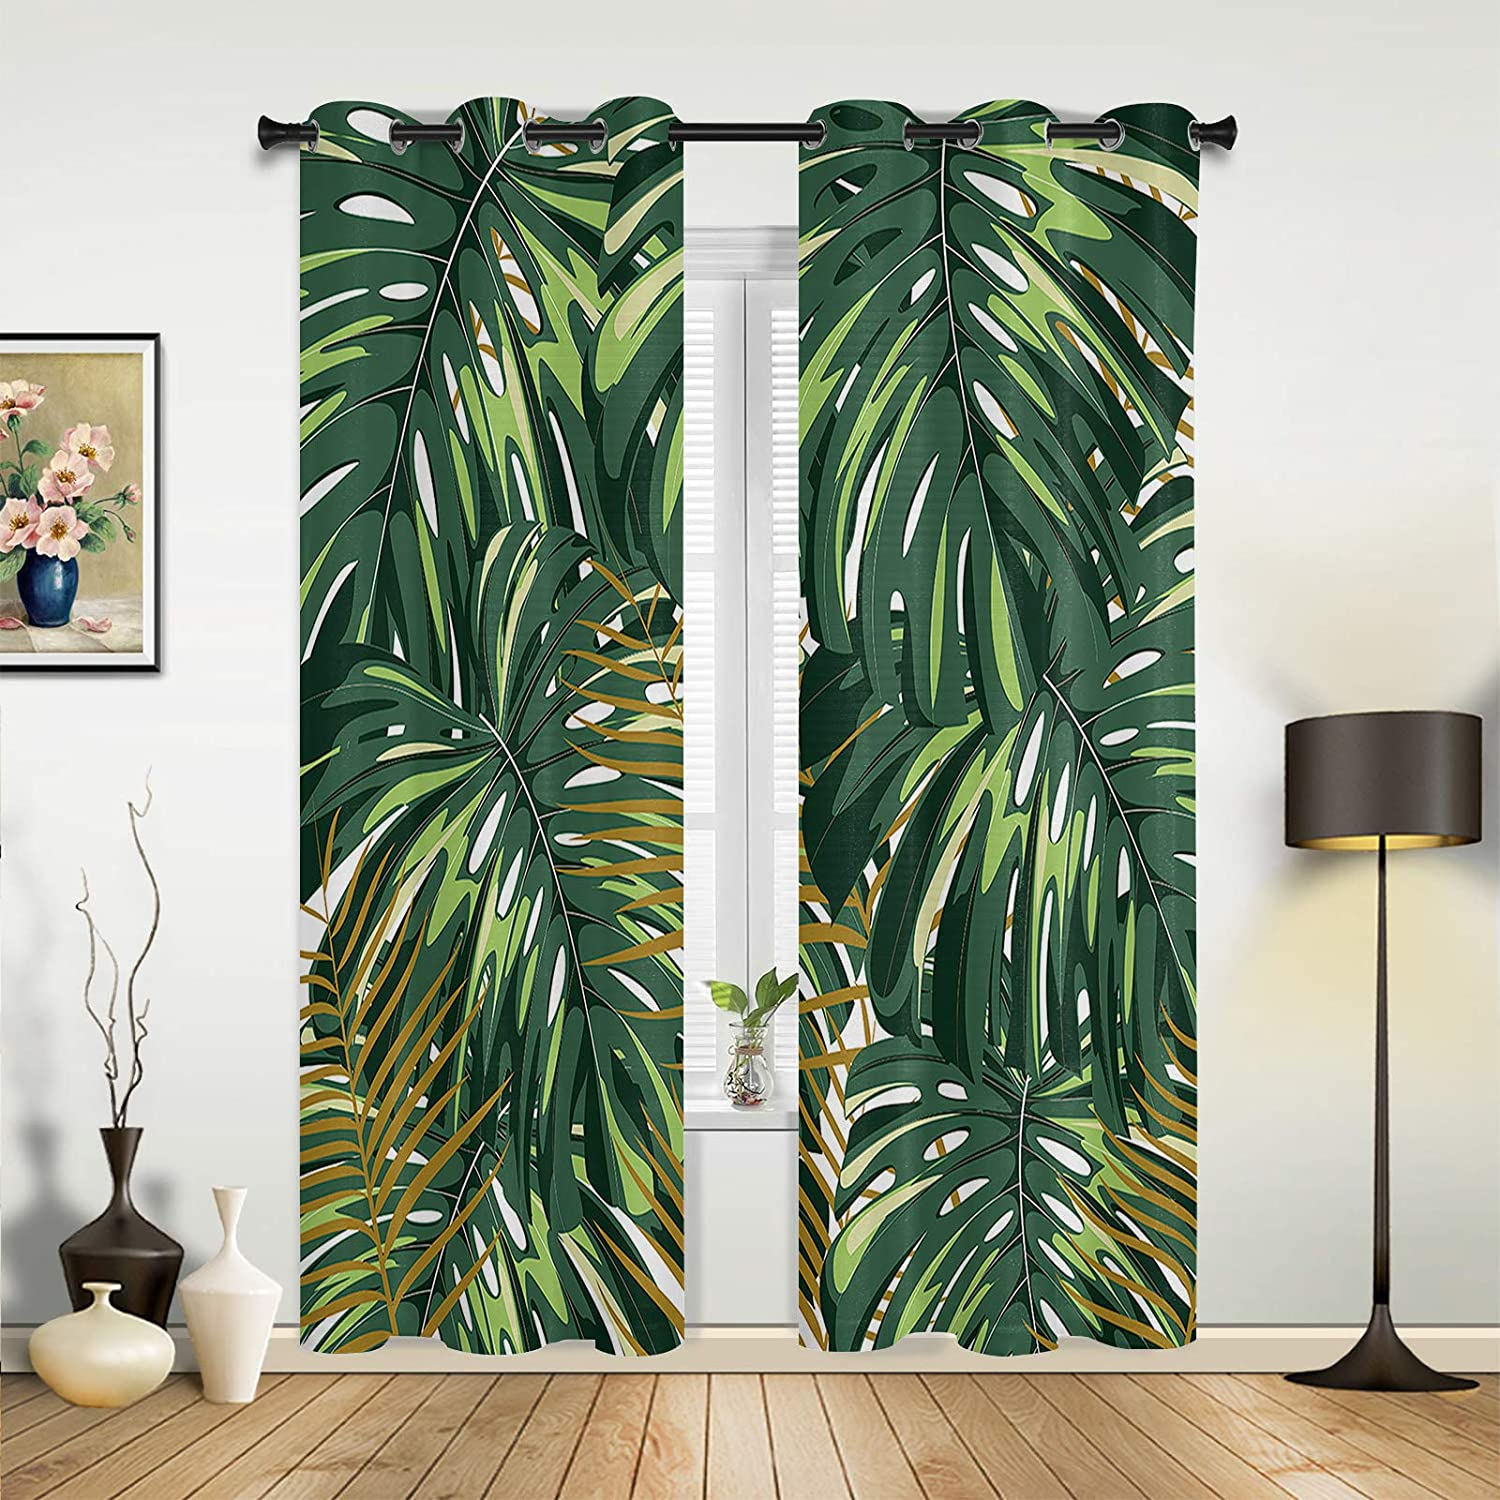 Beauty Decor Window Sheer Curtains for Bedroom Living Room Tropical Plant Monstera Leaves Green Elegant Window Drapes Grommet Top Airy Window Treatment Set of 2 Panels- 40''x84''